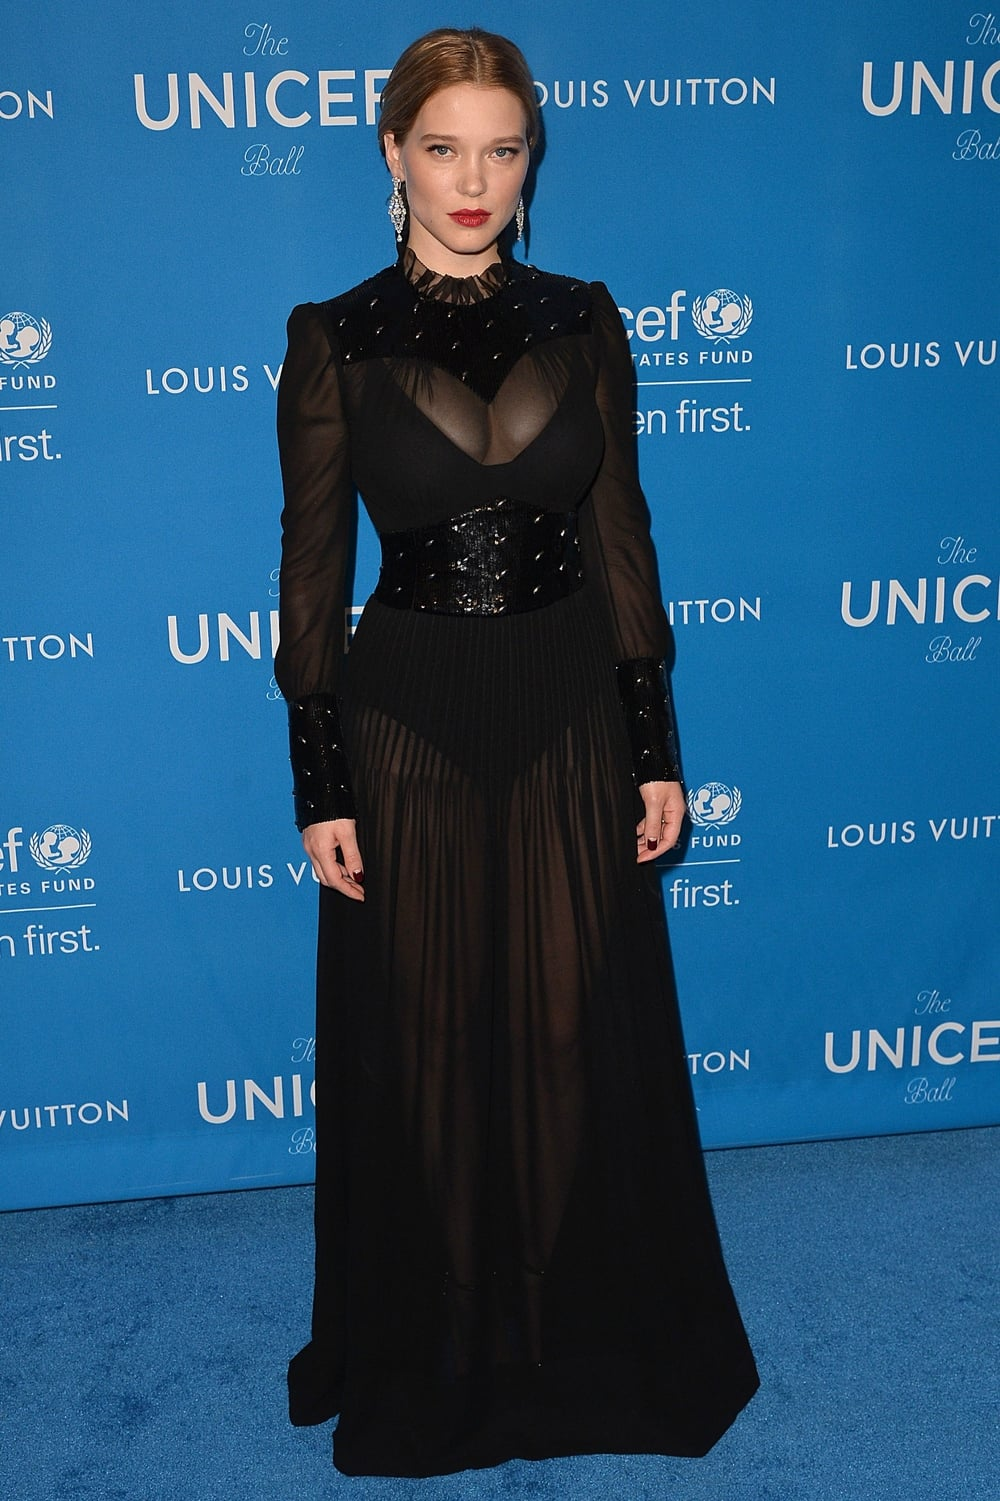 12 January New face of Louis Vuitton Lea Seydoux was also in attendance, wearing a sheer black gown